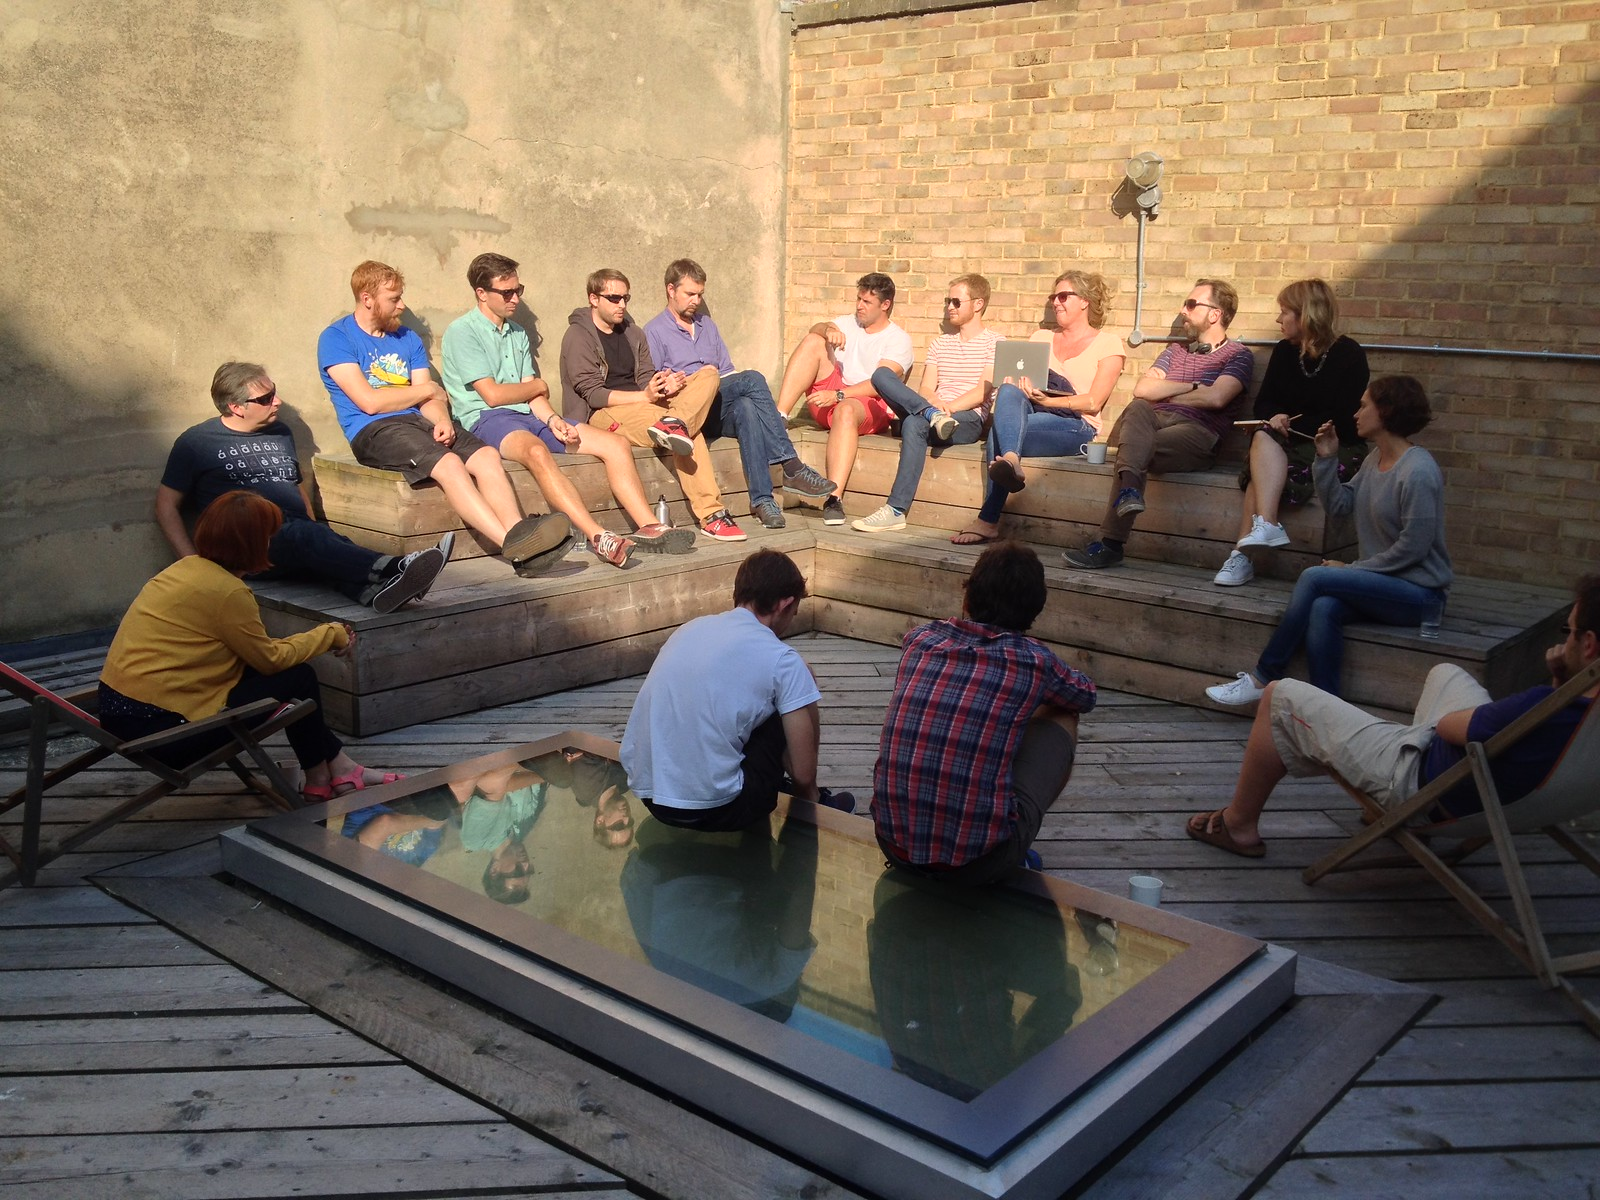 The end of summer, Monday meeting at Clearleft